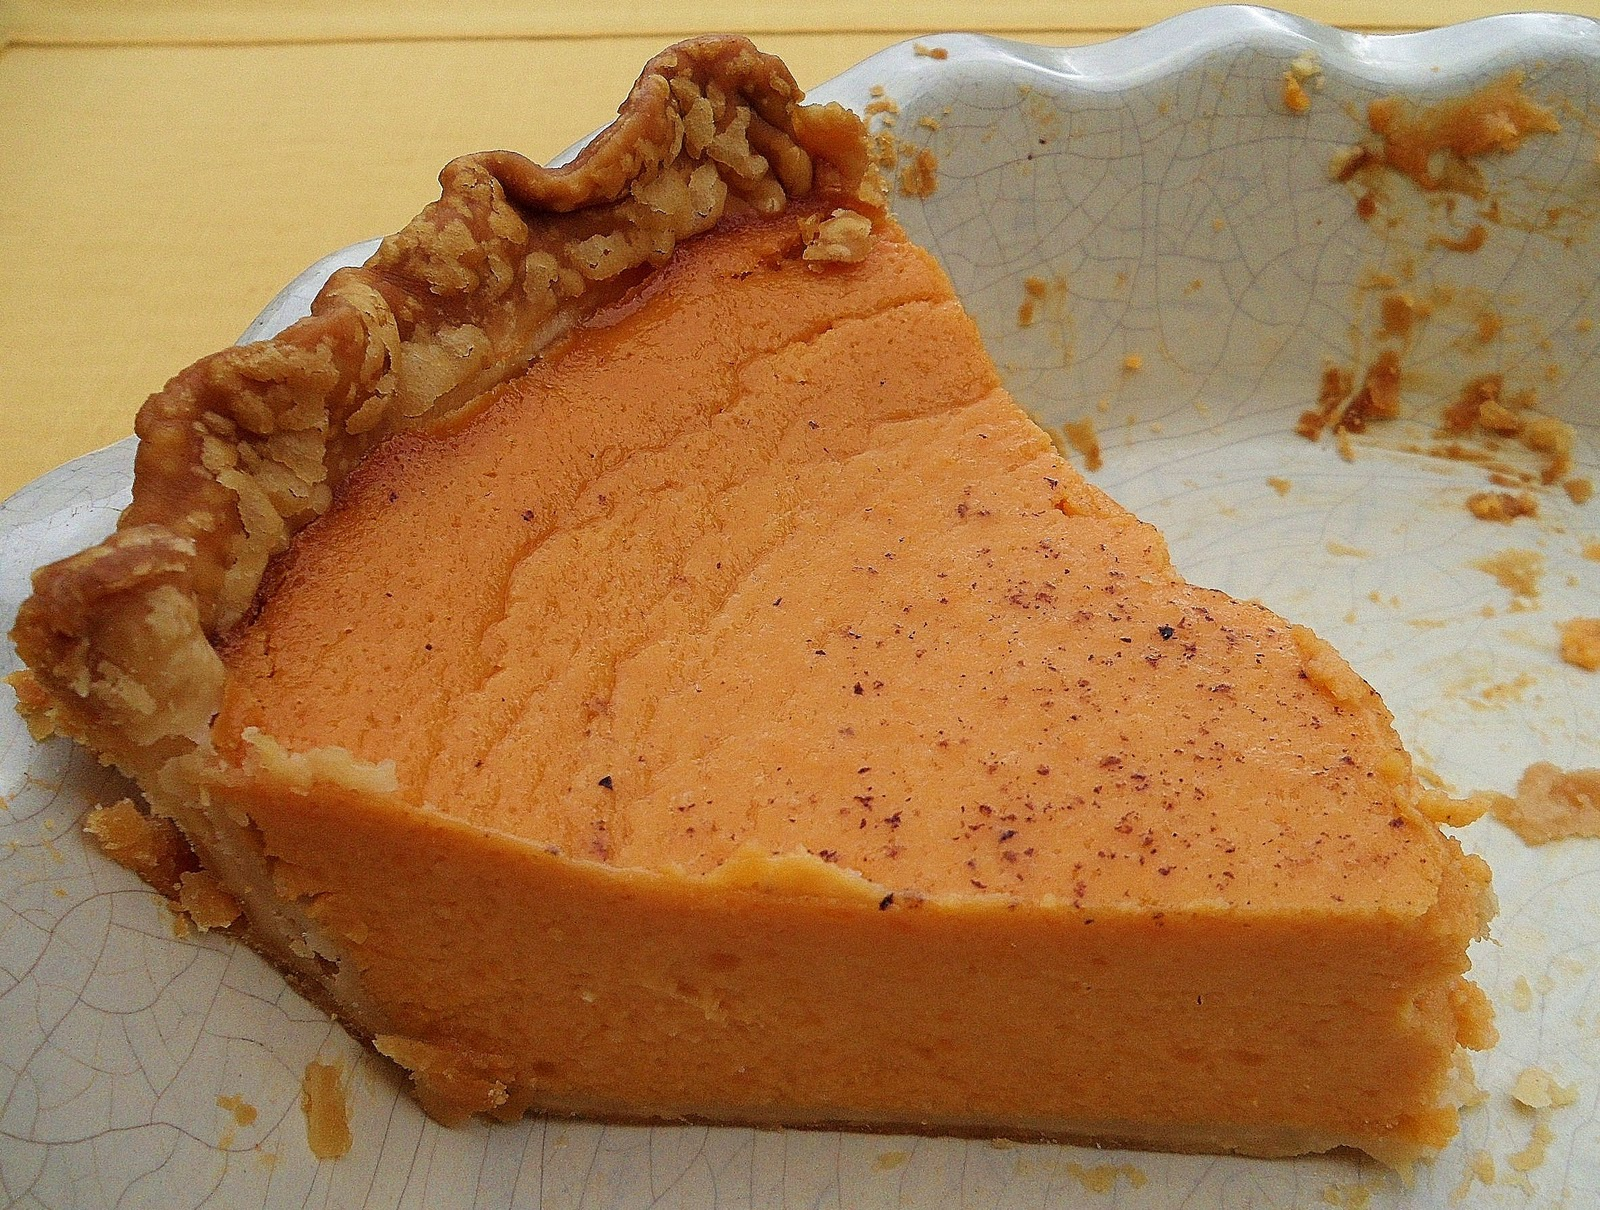 sweet potato pie Derotha mcintoshsay it ain't say's sweet potato pie contest1-1/2 cup mashed,  cooked sweet potatoes or yams 3/4 cup packed light-brown.